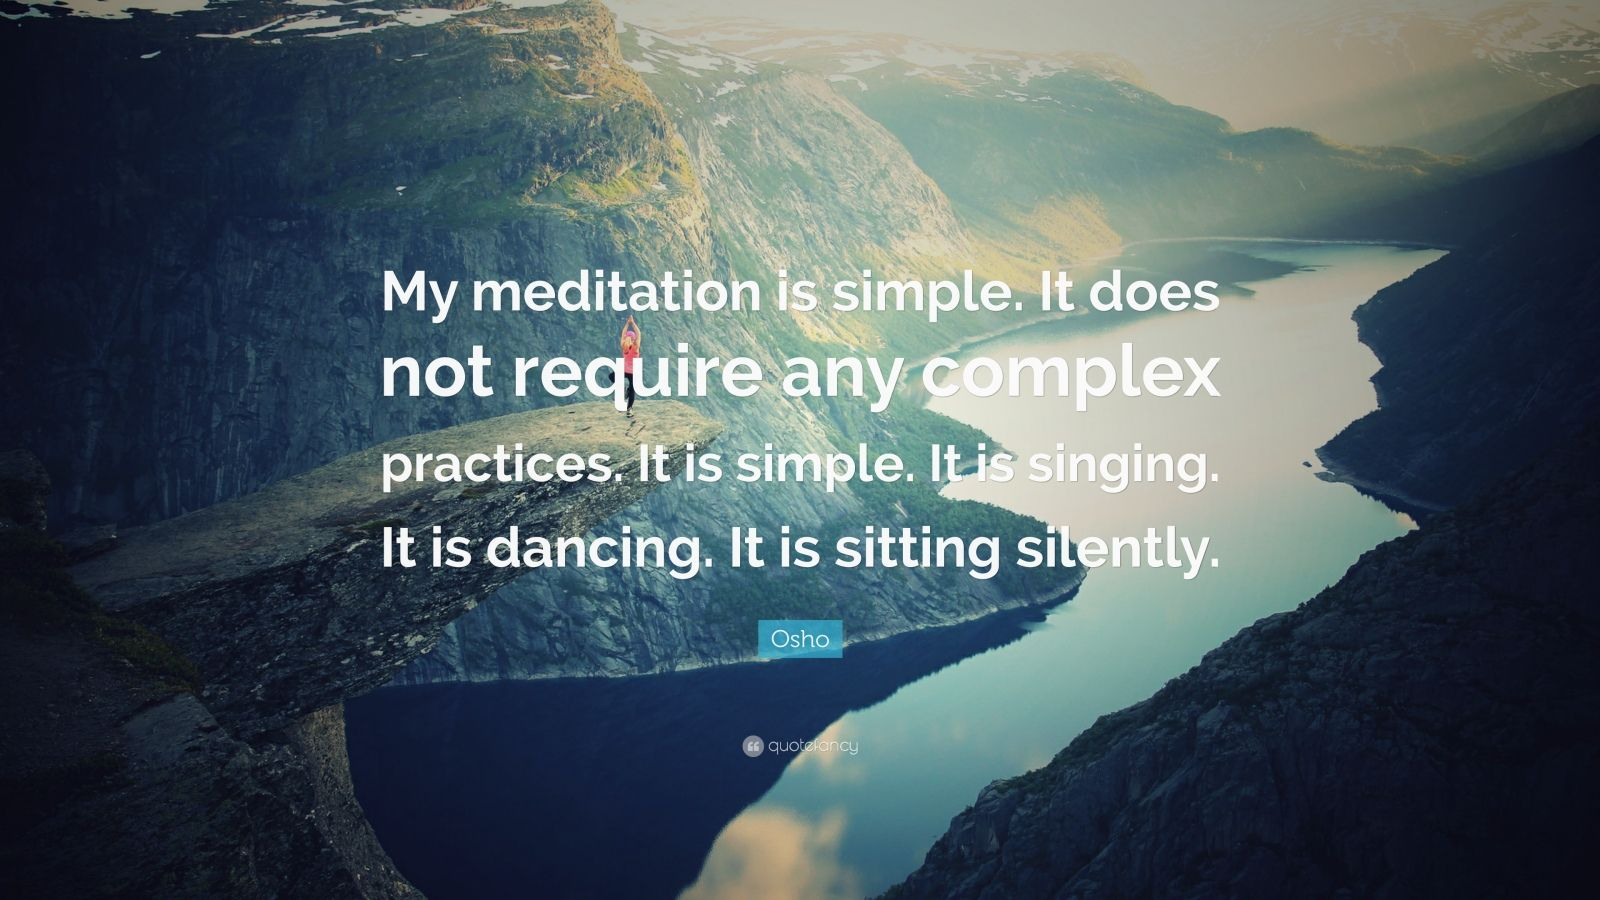 """Osho Quote: """"My meditation is simple. It does not require any complex practices. It is simple. It is singing. It is dancing. It is sitting silently."""""""